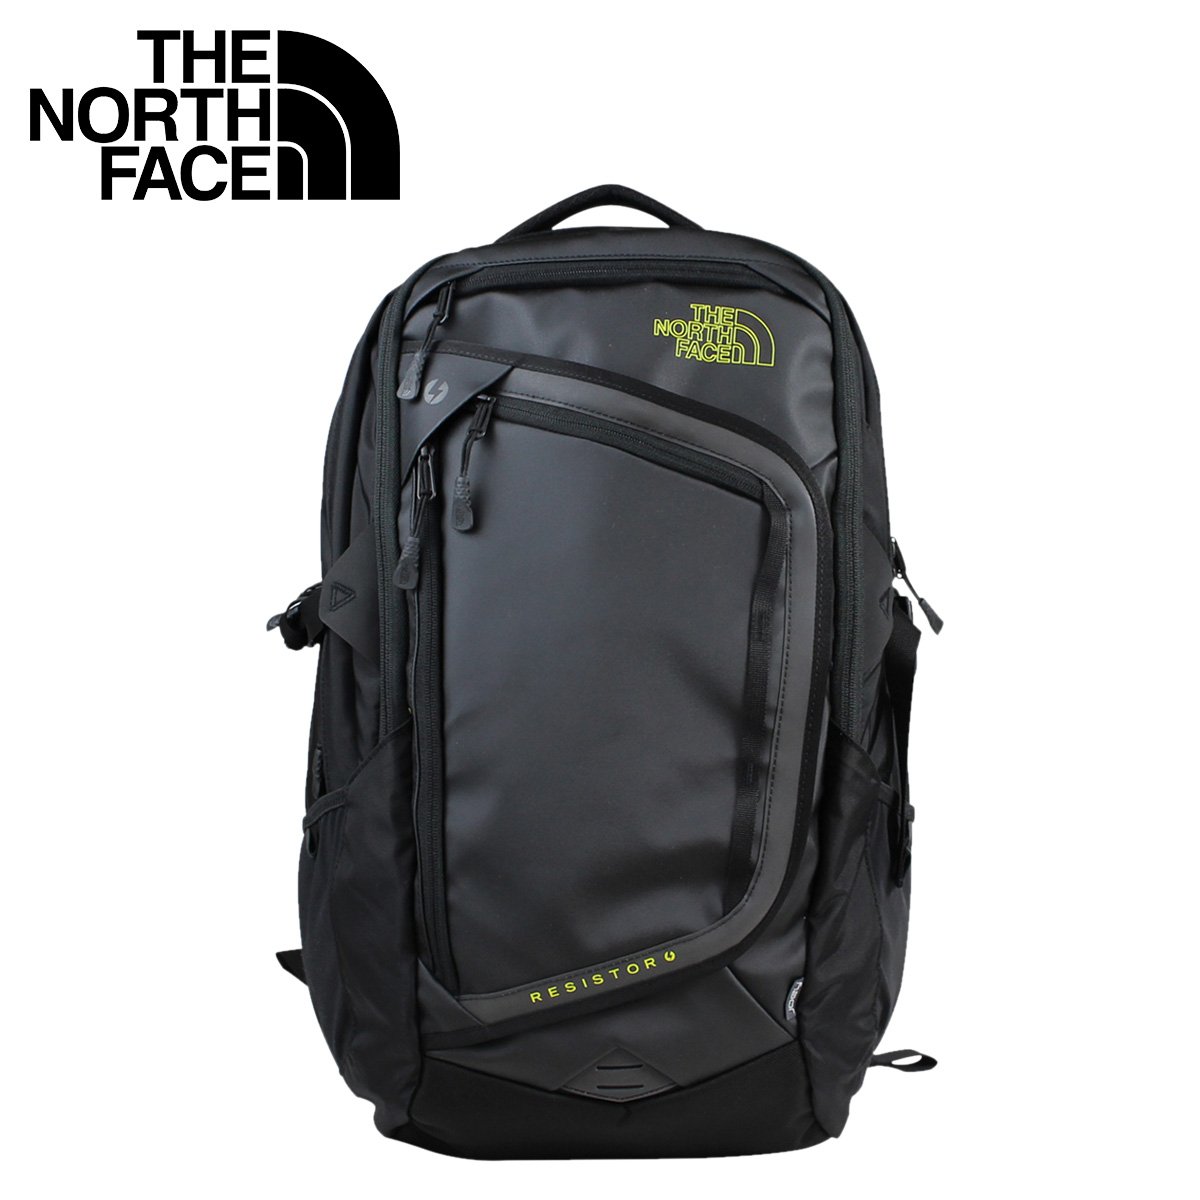 sports shoes a3d16 e739e THE NORTH FACE North Face rucksack backpack RESISTOR CHARGED CTK4 men gap  Dis